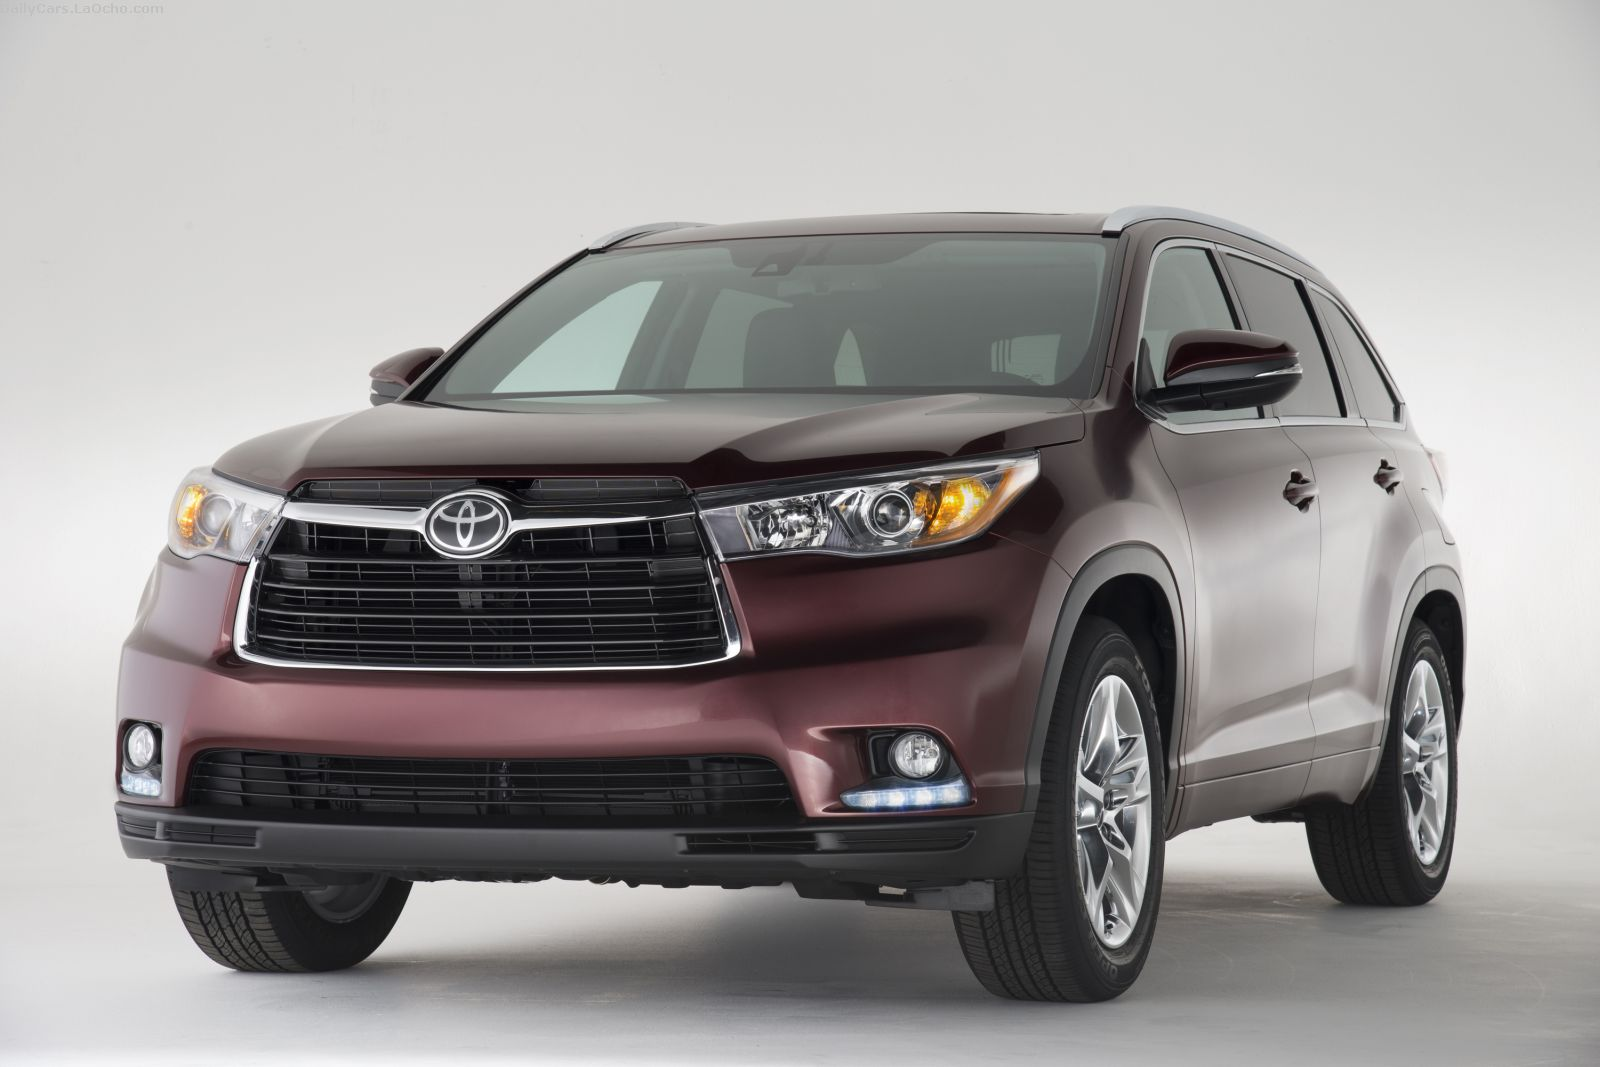 The all-new third-generation 2014 Toyota Highlander mid-size SUV made